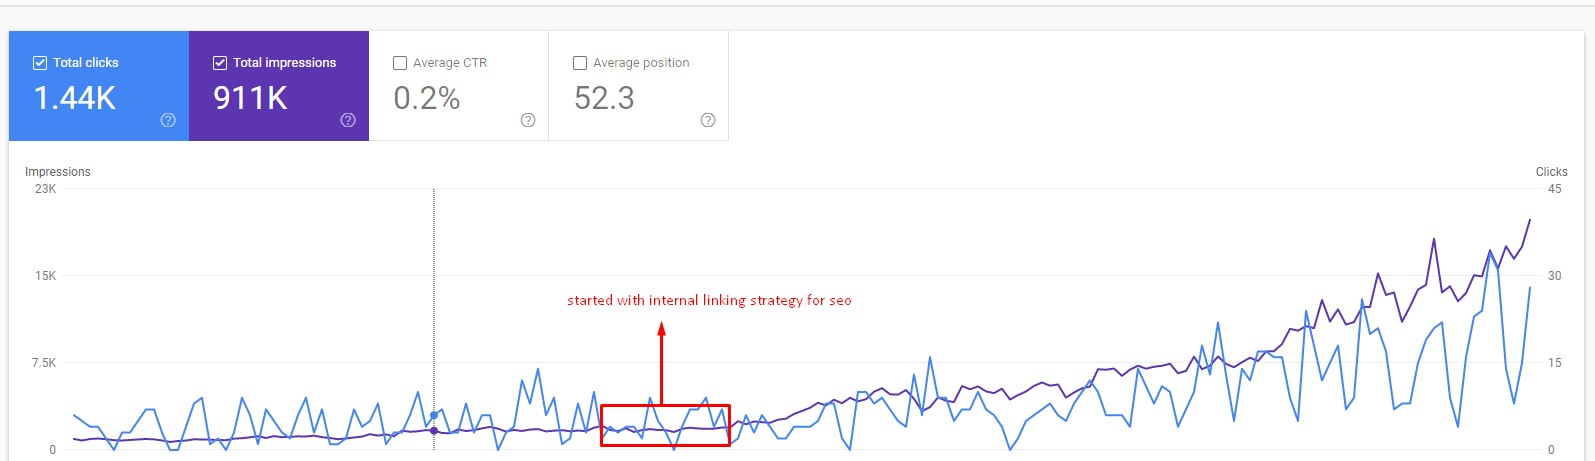 internal linking strategy for white hat seo improved my search visibility and traffic